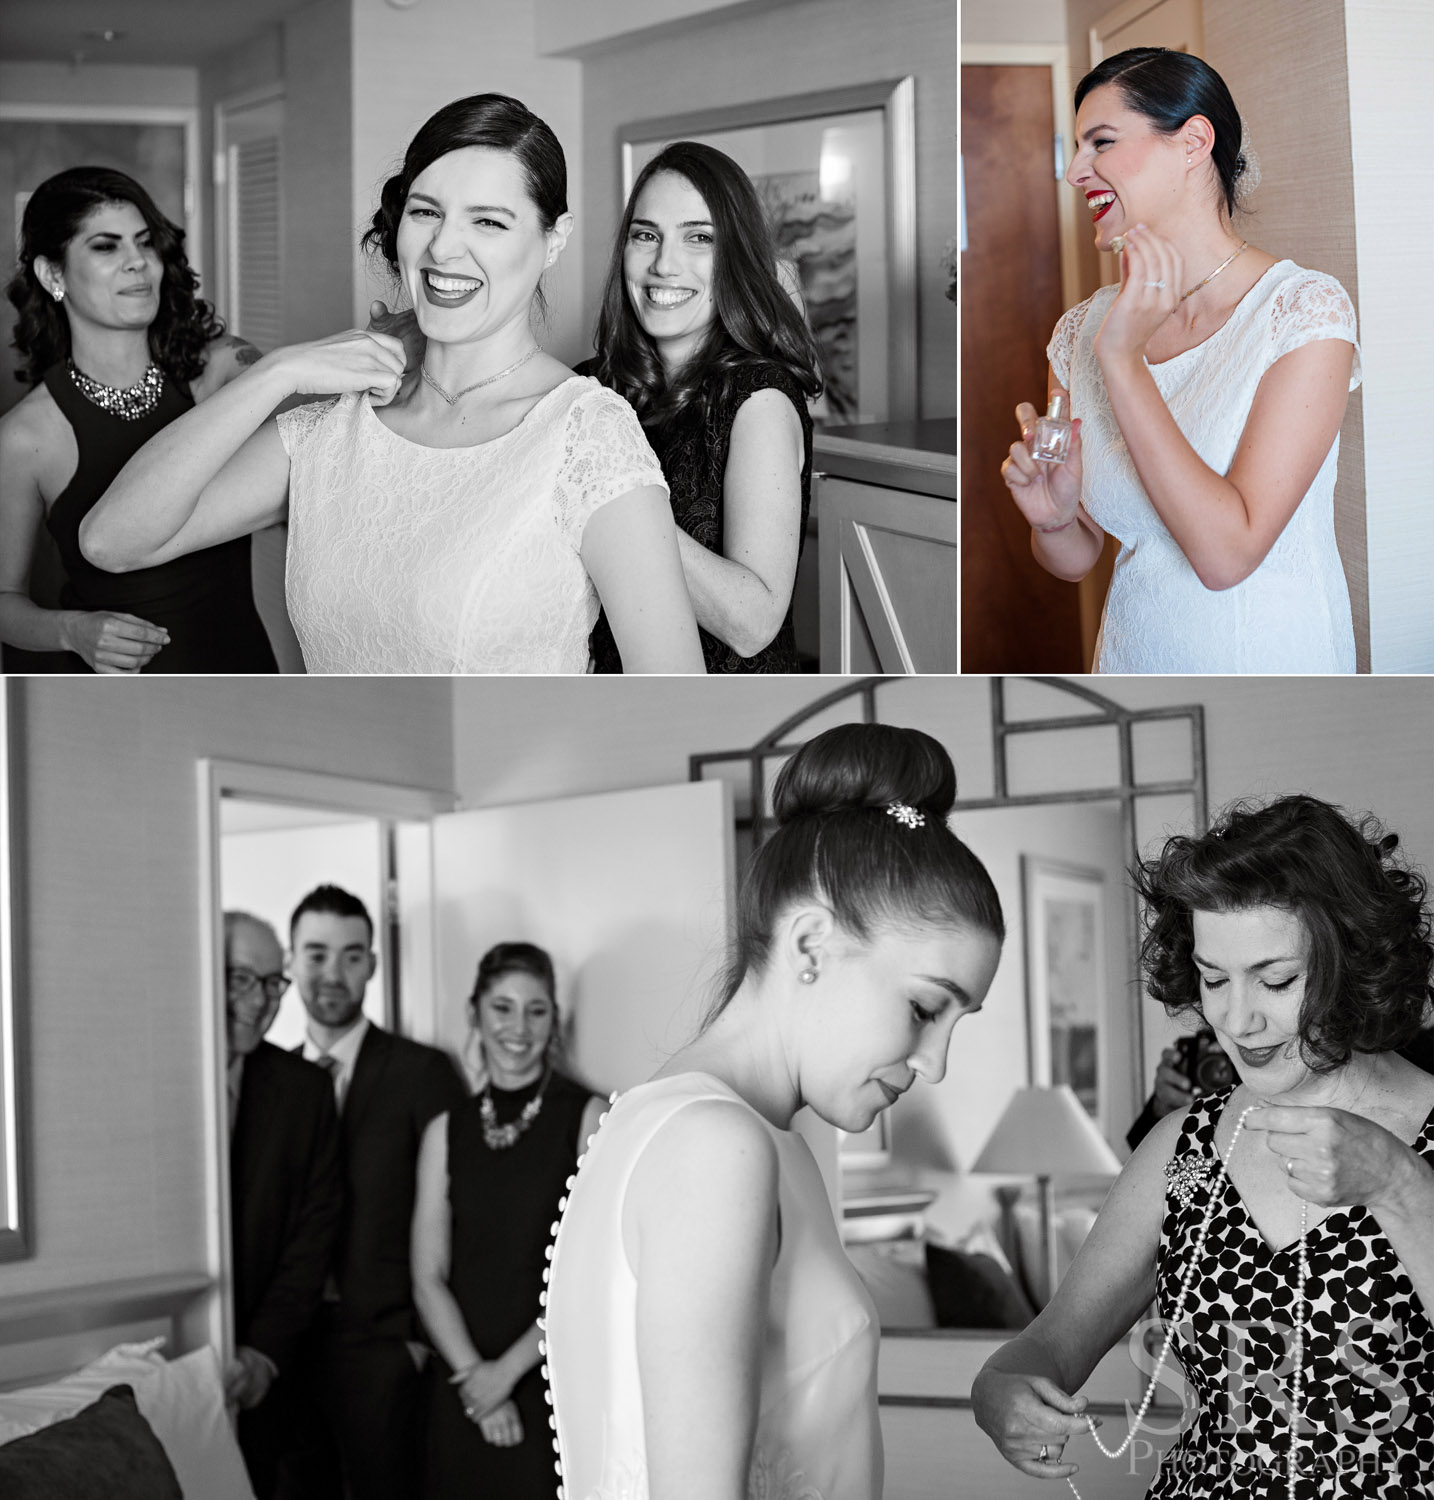 02_srs_photography_sara_stadtmiller_asbury_park_wedding_photography_nj_wedding_photographer_monmouth_county_wedding_photographer_same_sex_marriage_gay_wedding_empress_hotel_getting_ready